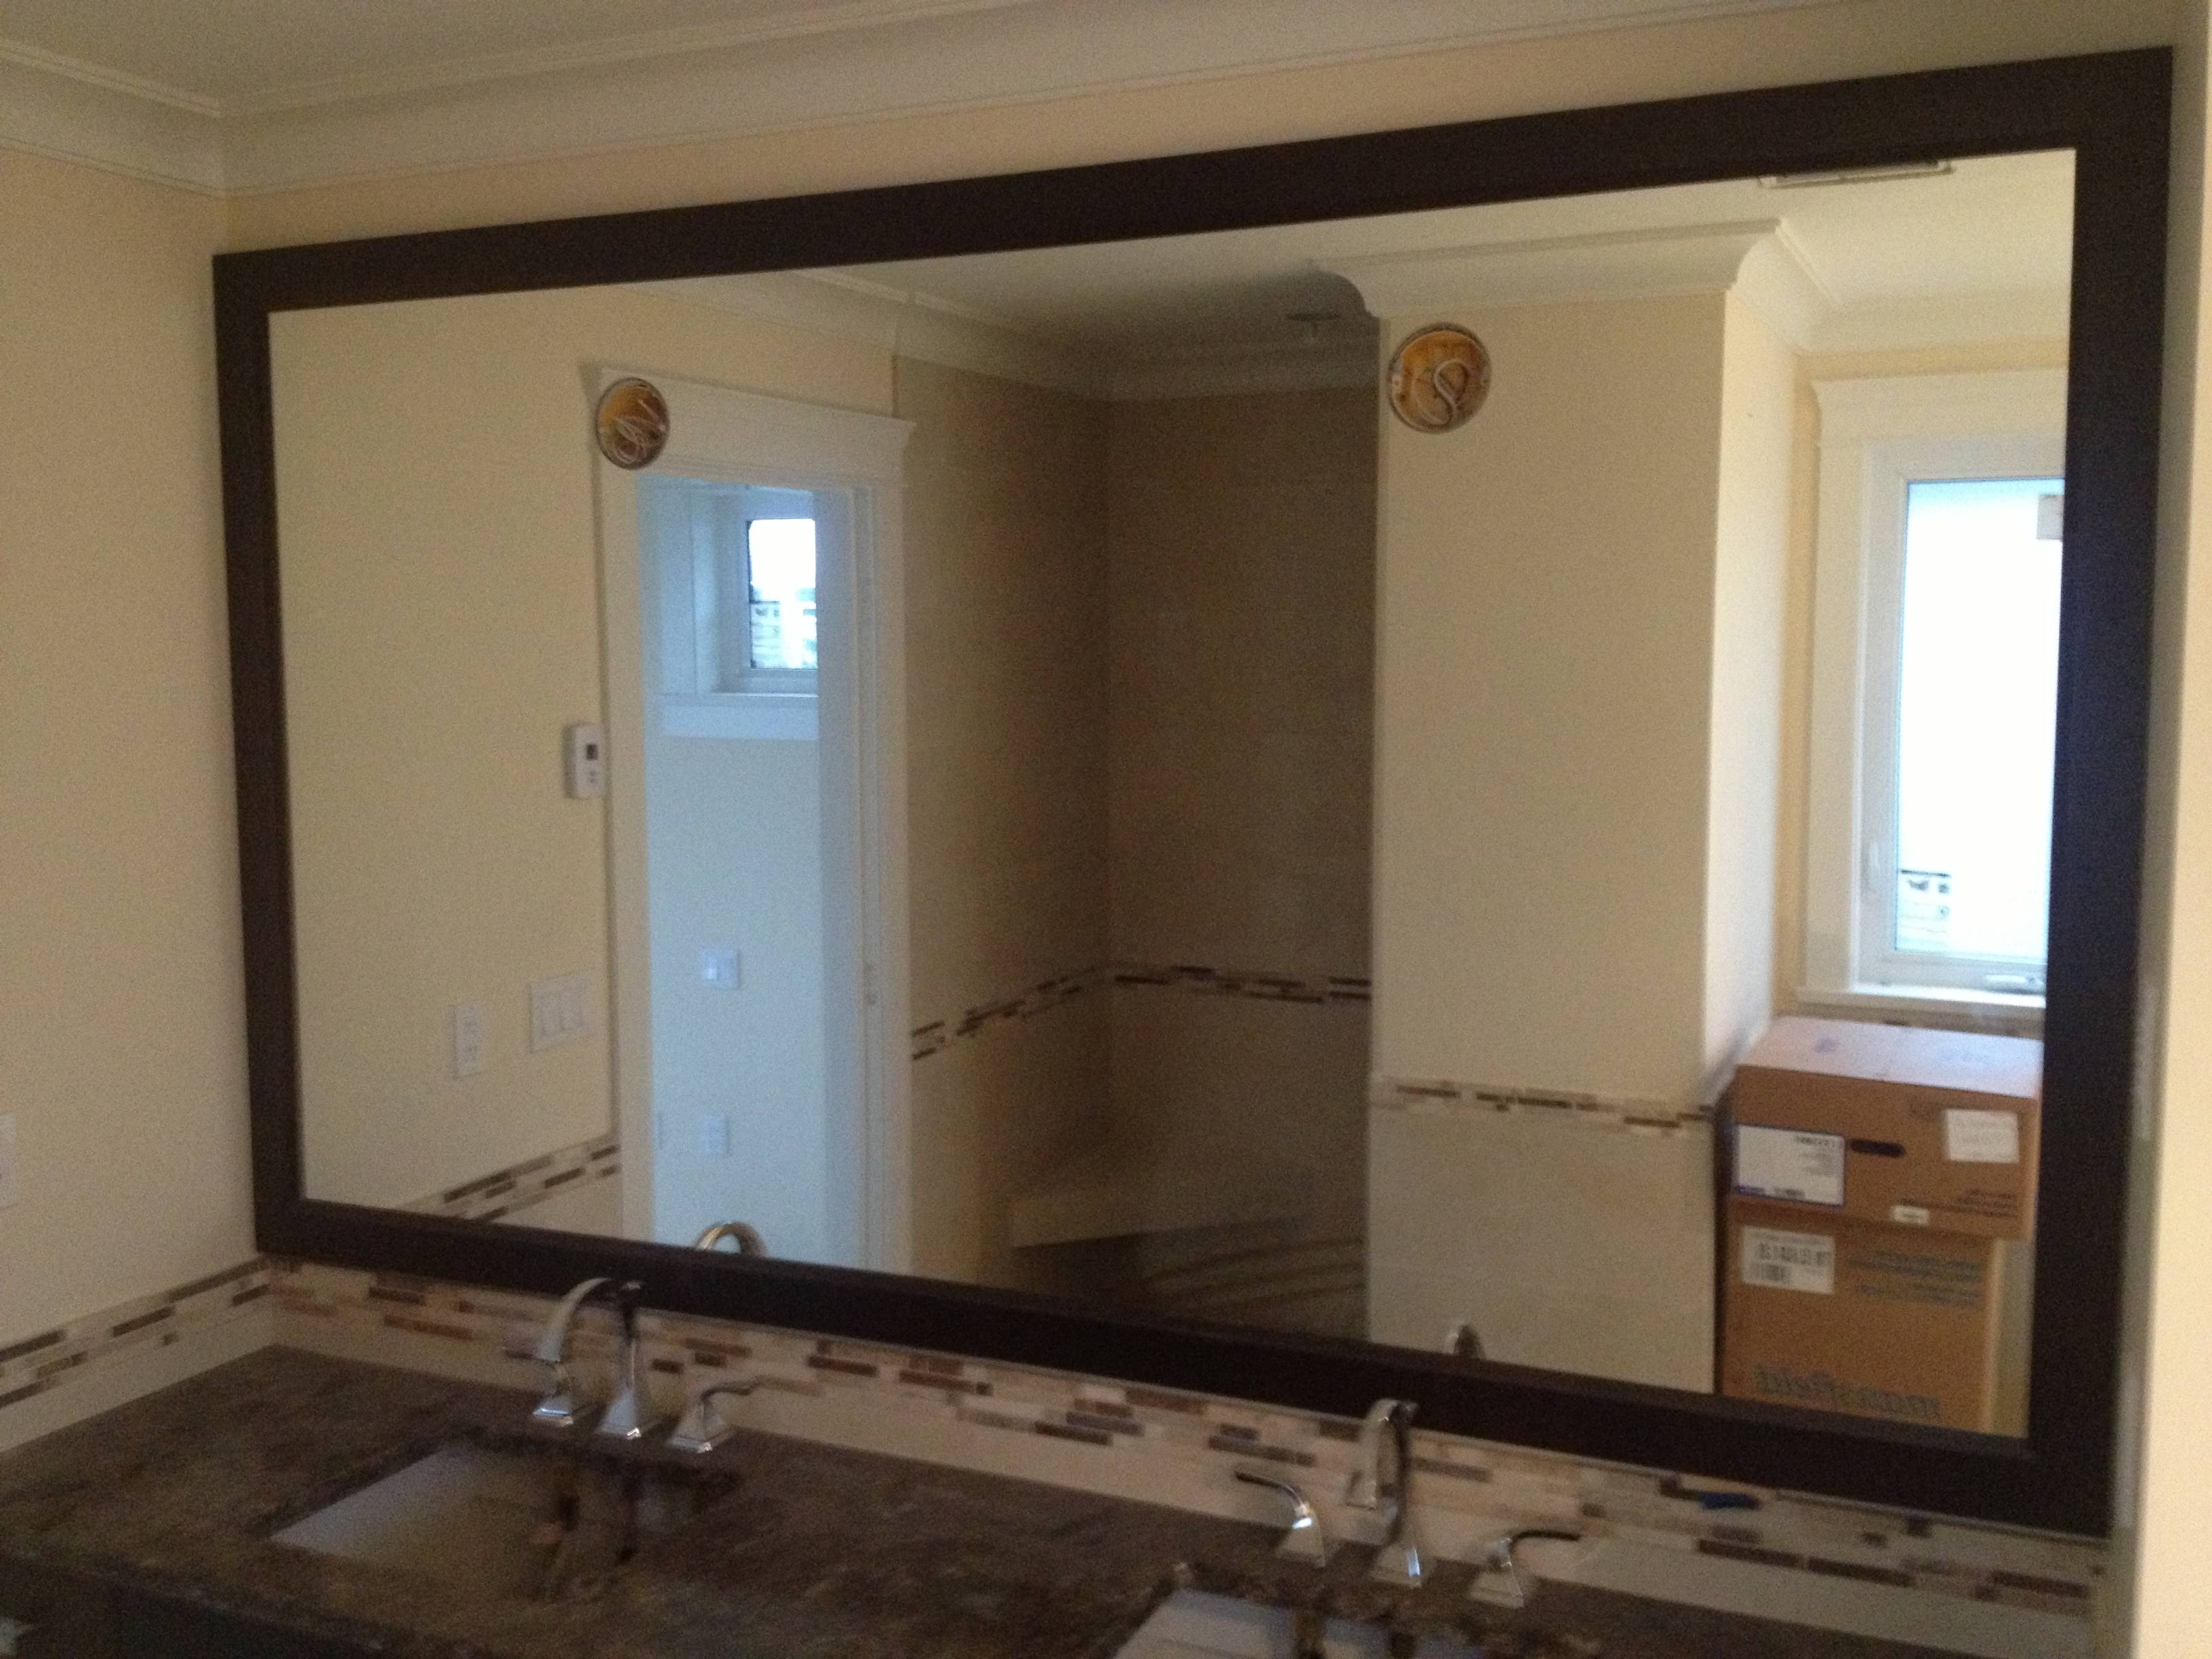 Large Framed Black Mirror For Bathroom And Subway Backsplash Tile within Large Brown Mirrors (Image 8 of 15)